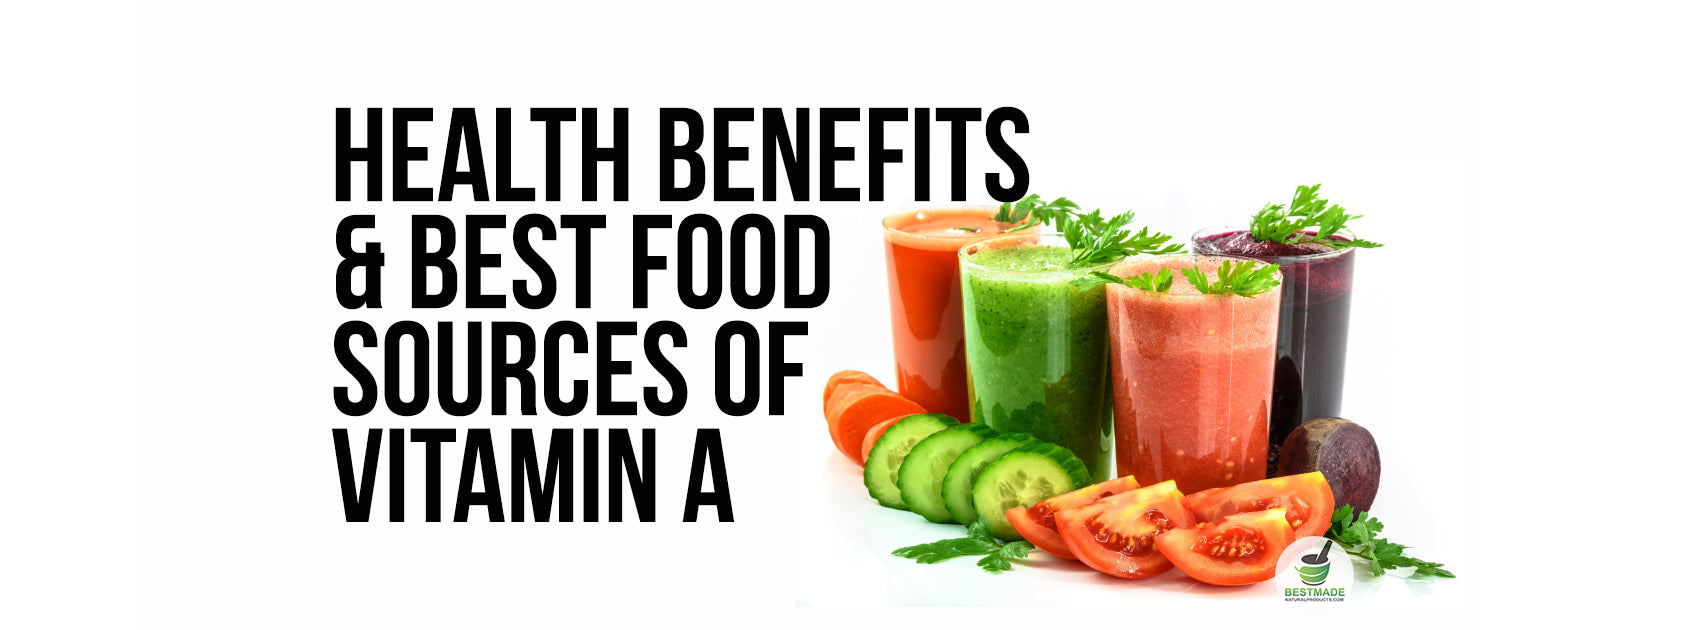 Health Benefits And Best Food Sources Of Vitamin A